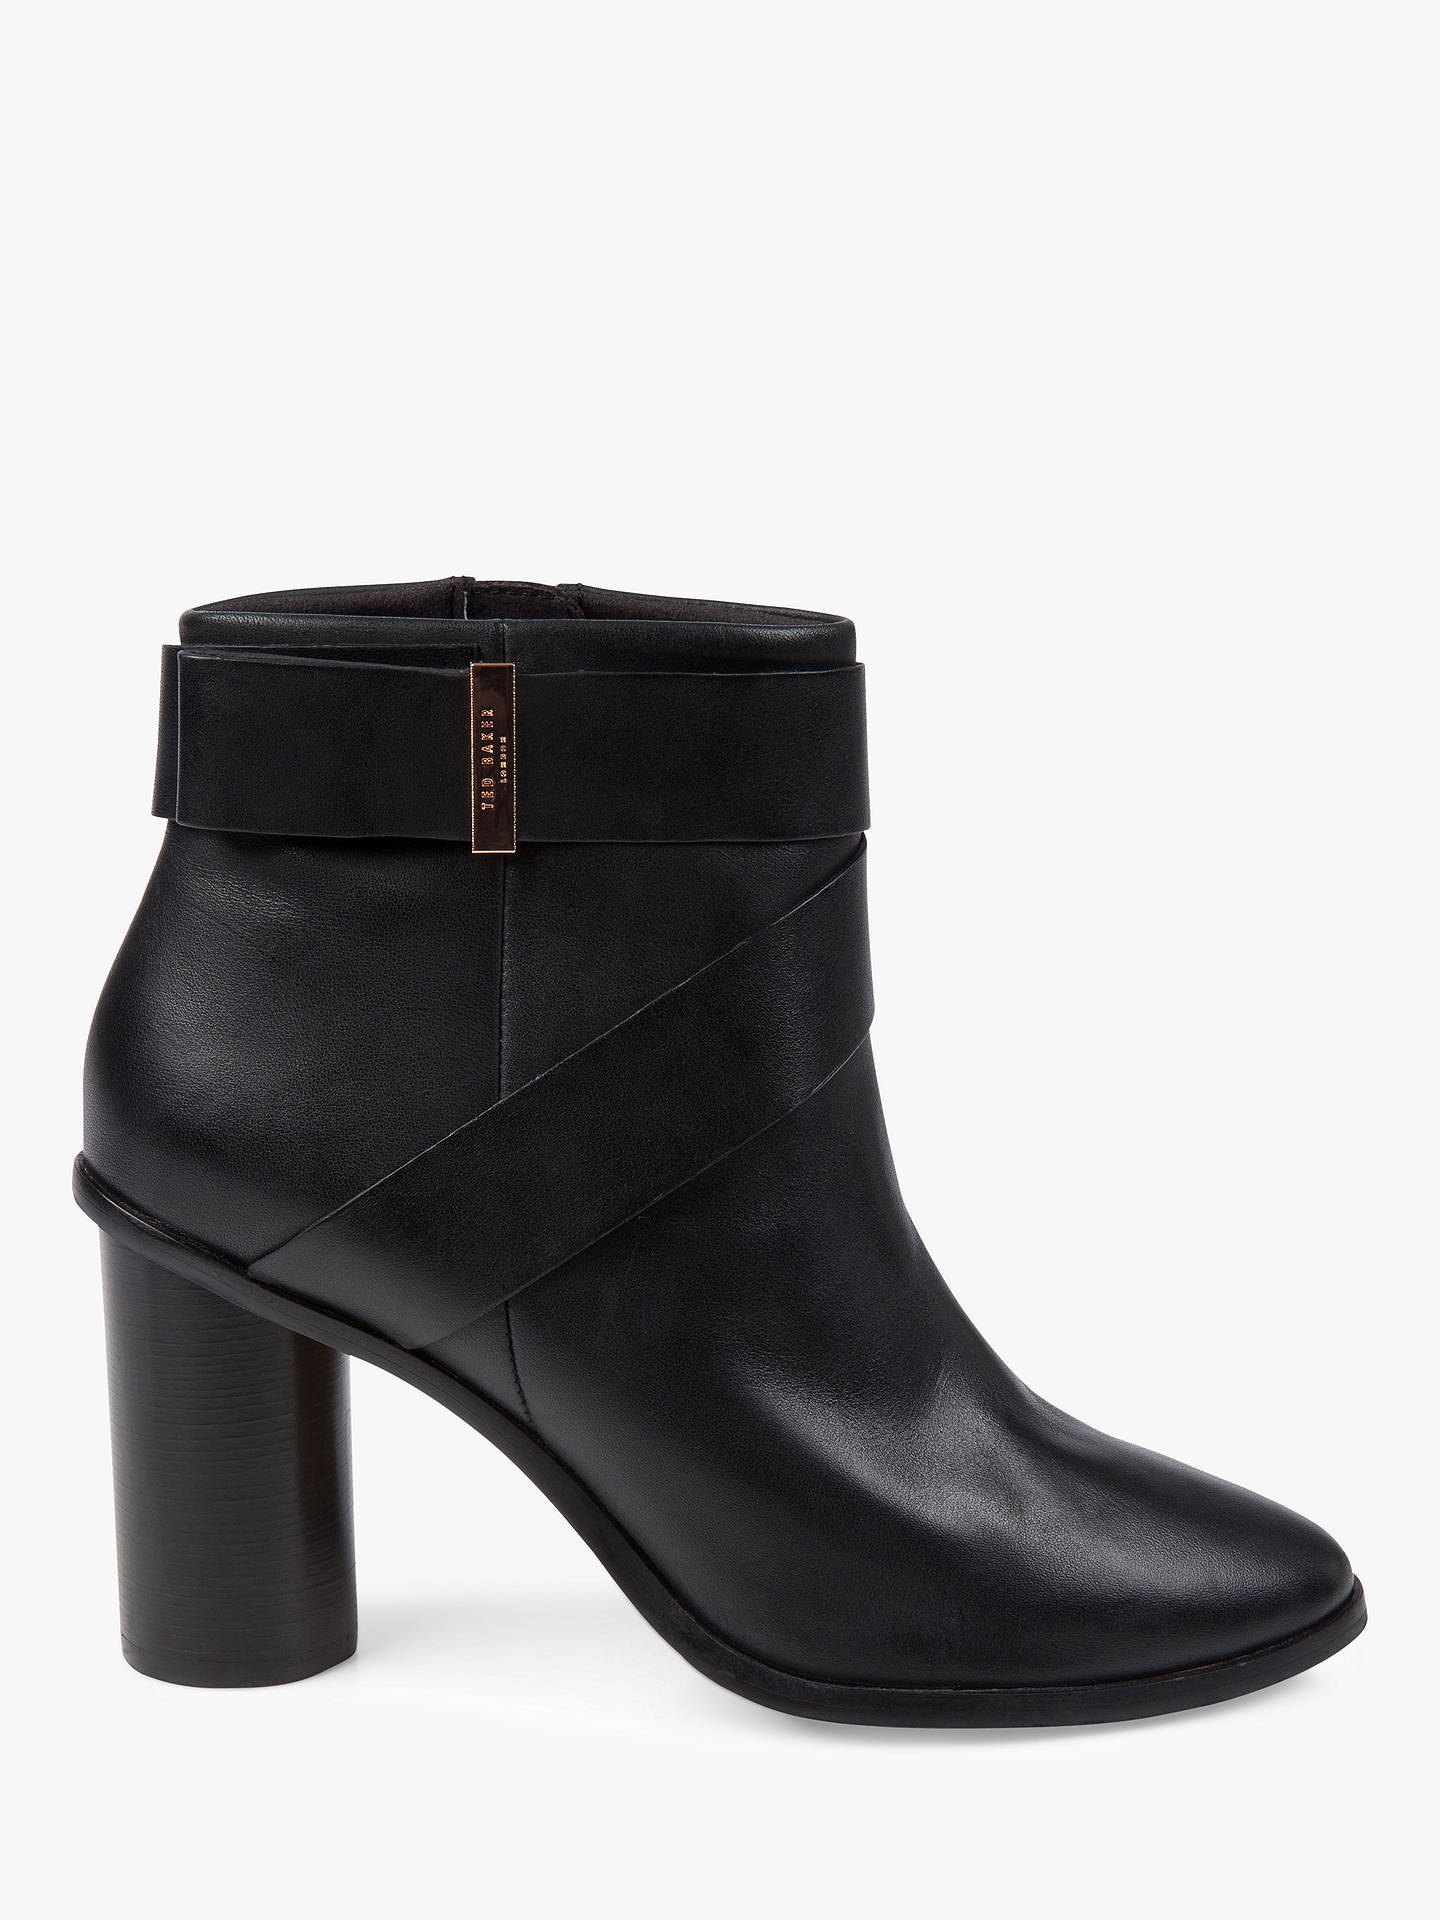 32e84dc04 Buy Ted Baker Matyna Block Heeled Ankle Boots